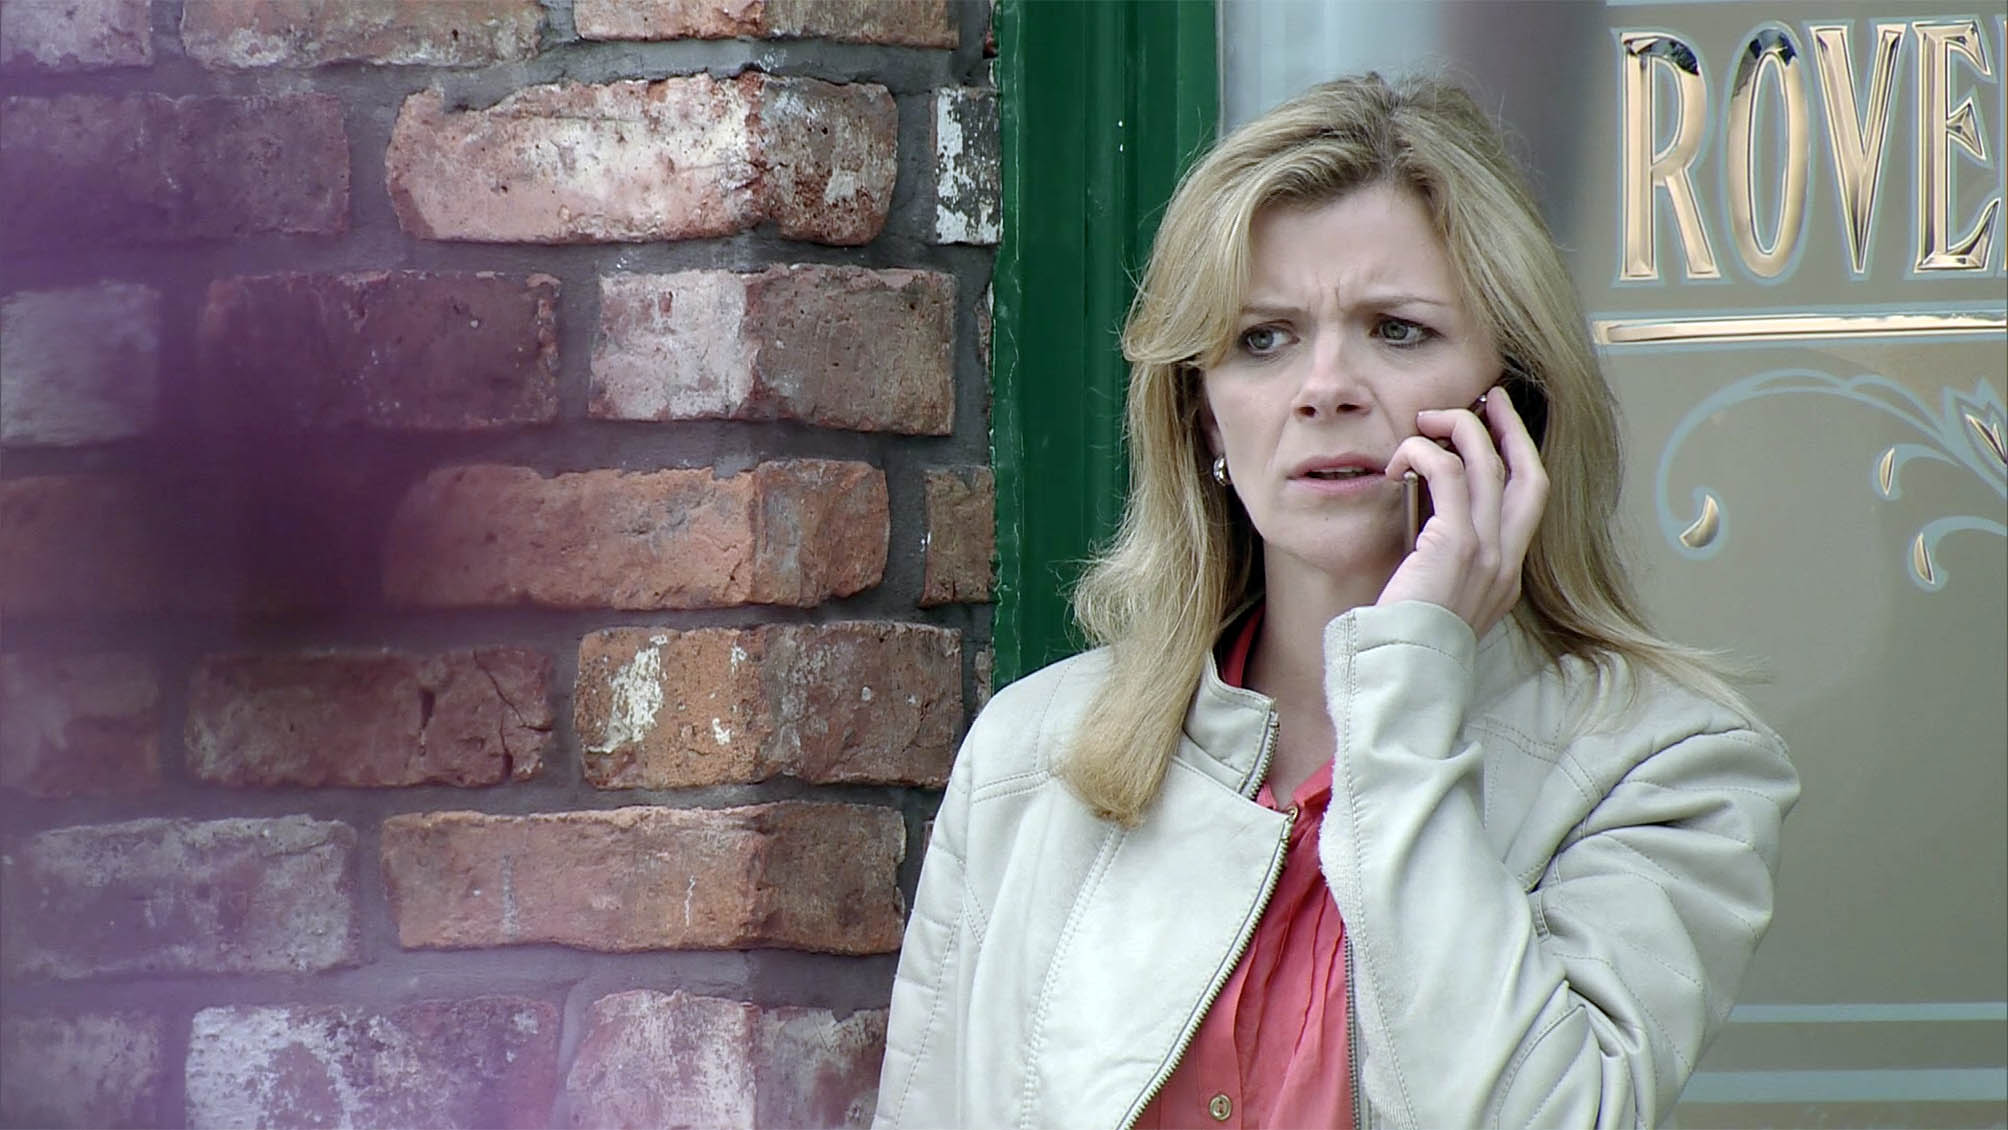 FROM ITV STRICT EMBARGO - No Use Before Tuesday 12 July 2016 Coronation Street - Ep 8951 Friday 22 July 2016 - 1st Ep Leanne Tilsley [JANE DANSON] decides to tell the father of the baby that's she's pregnant - she calls him and asks to meet. Picture contact: david.crook@itv.com on 0161 952 6214 This photograph is (C) ITV Plc and can only be reproduced for editorial purposes directly in connection with the programme or event mentioned above, or ITV plc. Once made available by ITV plc Picture Desk, this photograph can be reproduced once only up until the transmission [TX] date and no reproduction fee will be charged. Any subsequent usage may incur a fee. This photograph must not be manipulated [excluding basic cropping] in a manner which alters the visual appearance of the person photographed deemed detrimental or inappropriate by ITV plc Picture Desk. This photograph must not be syndicated to any other company, publication or website, or permanently archived, without the express written permission of ITV Plc Picture Desk. Full Terms and conditions are available on the website www.itvpictures.com